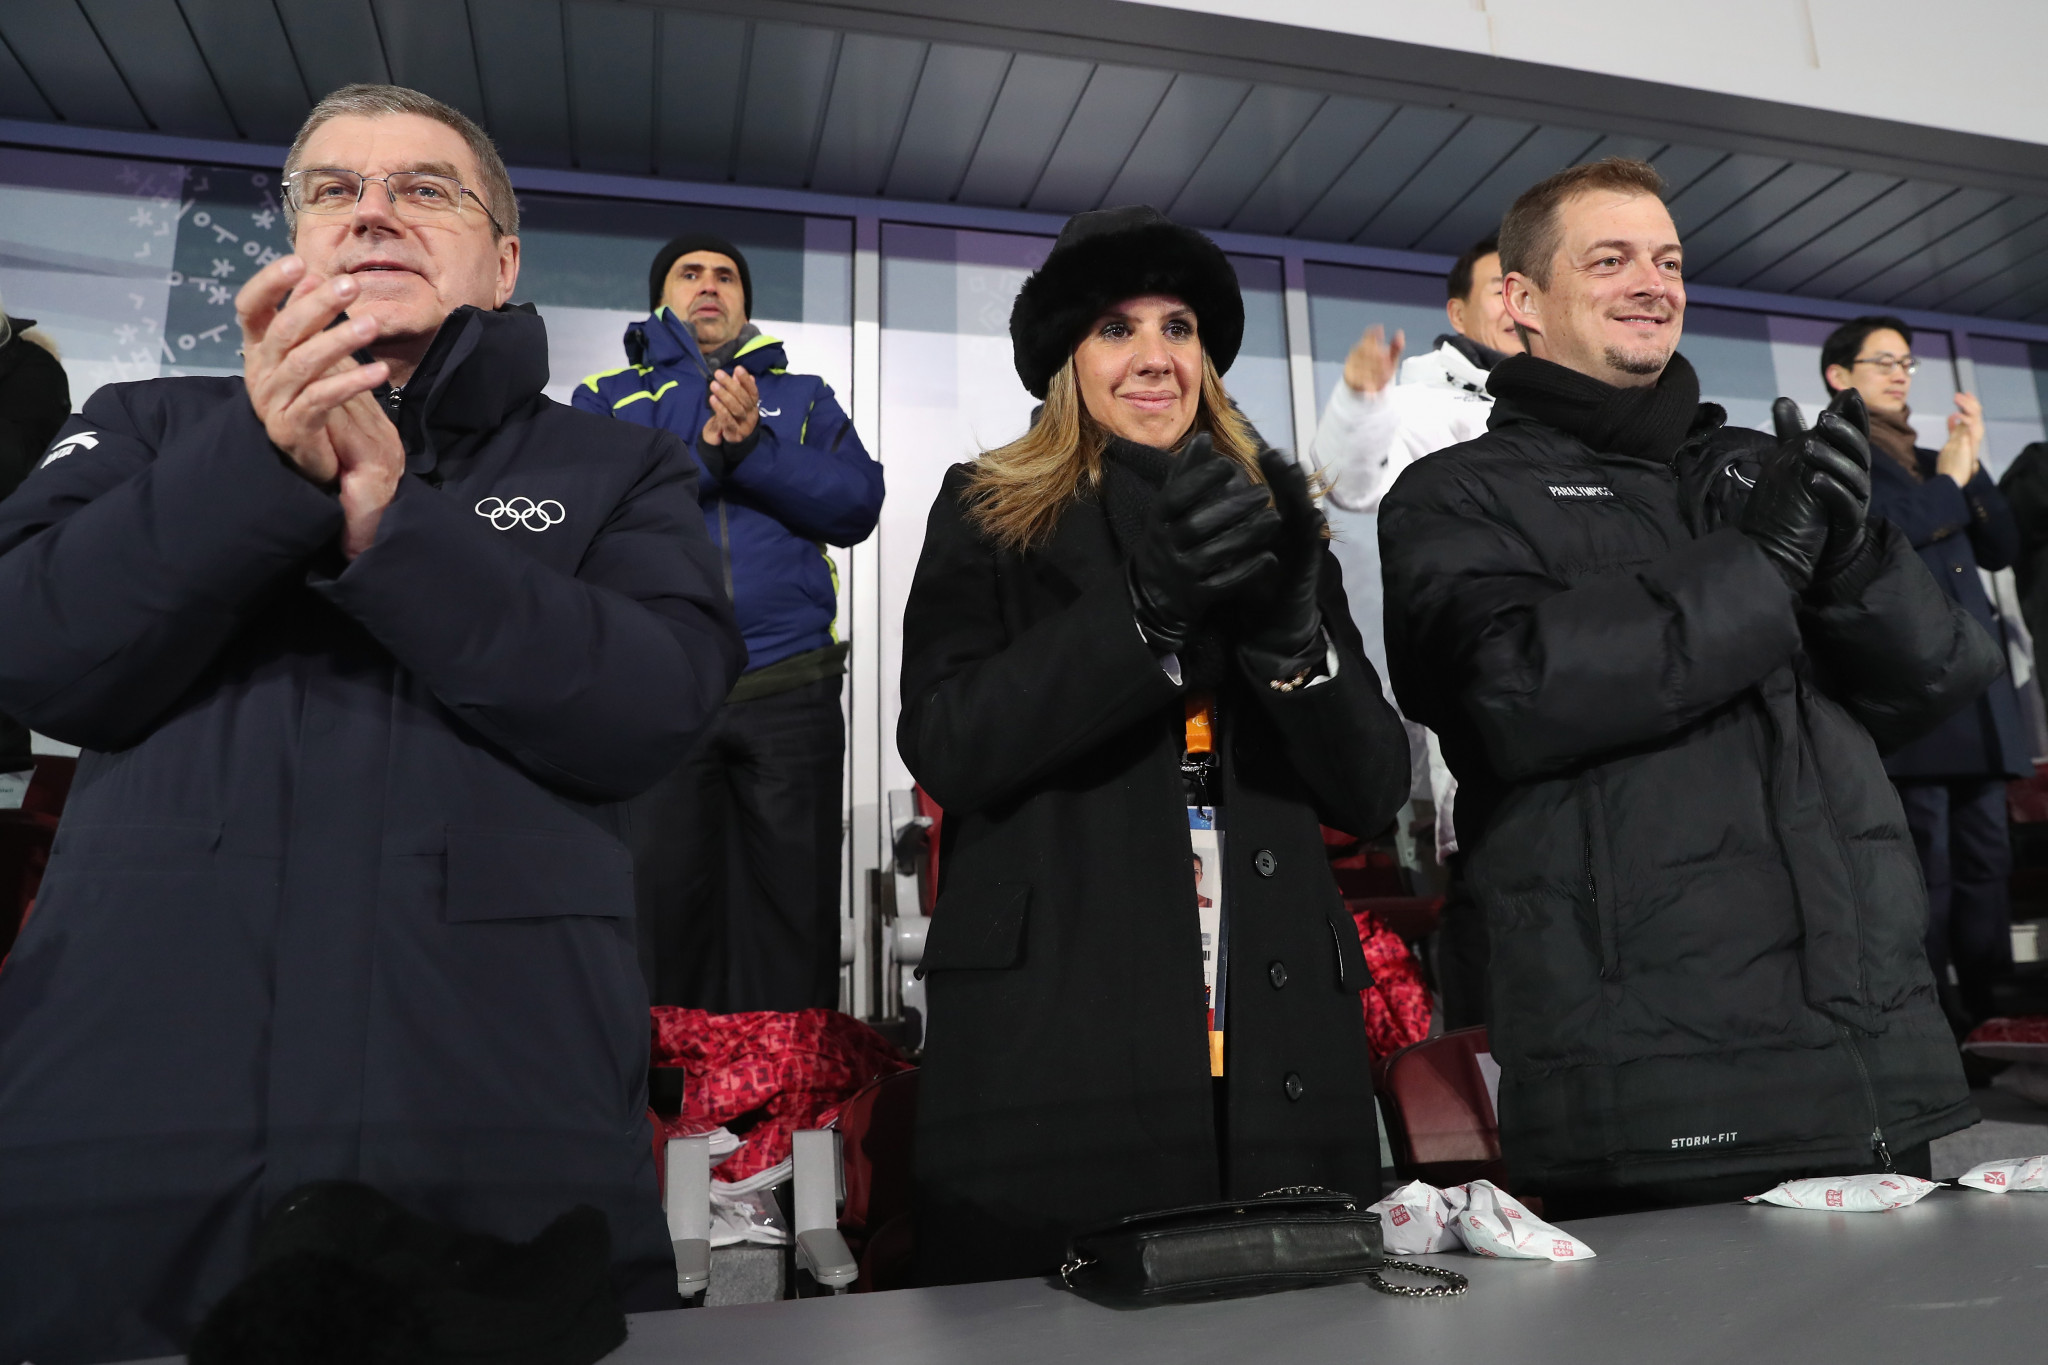 IOC President Thomas Bach pictured with Marcela and Andrew Parsons ©Getty Images